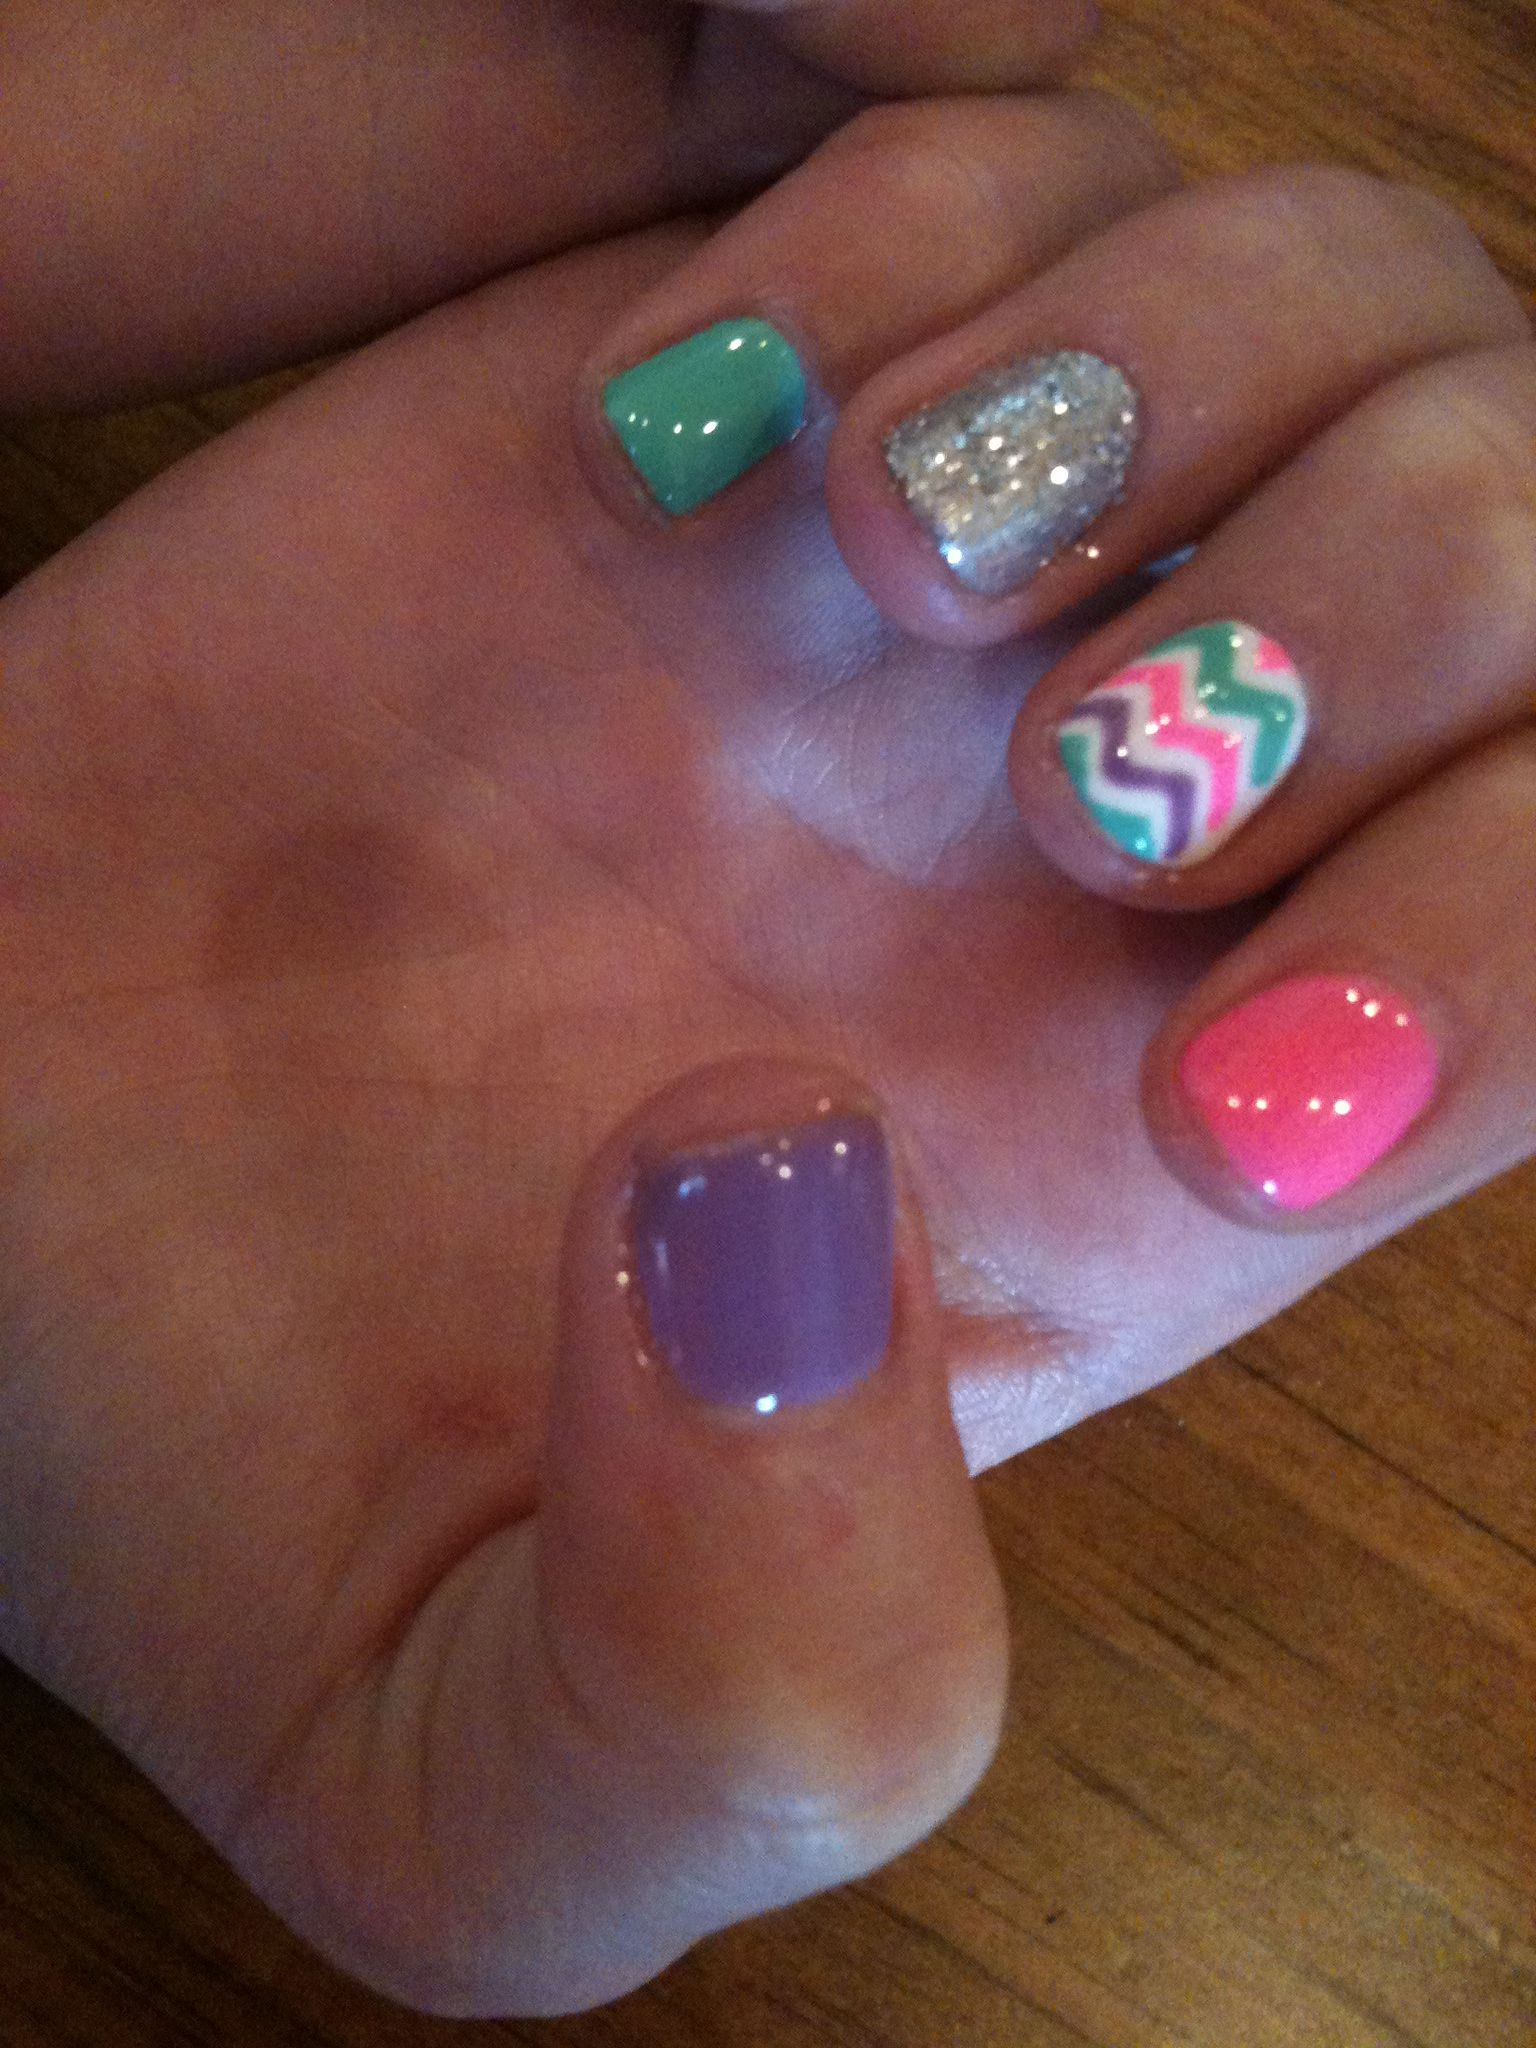 Cute chevron nails just wish i could go get them done right now